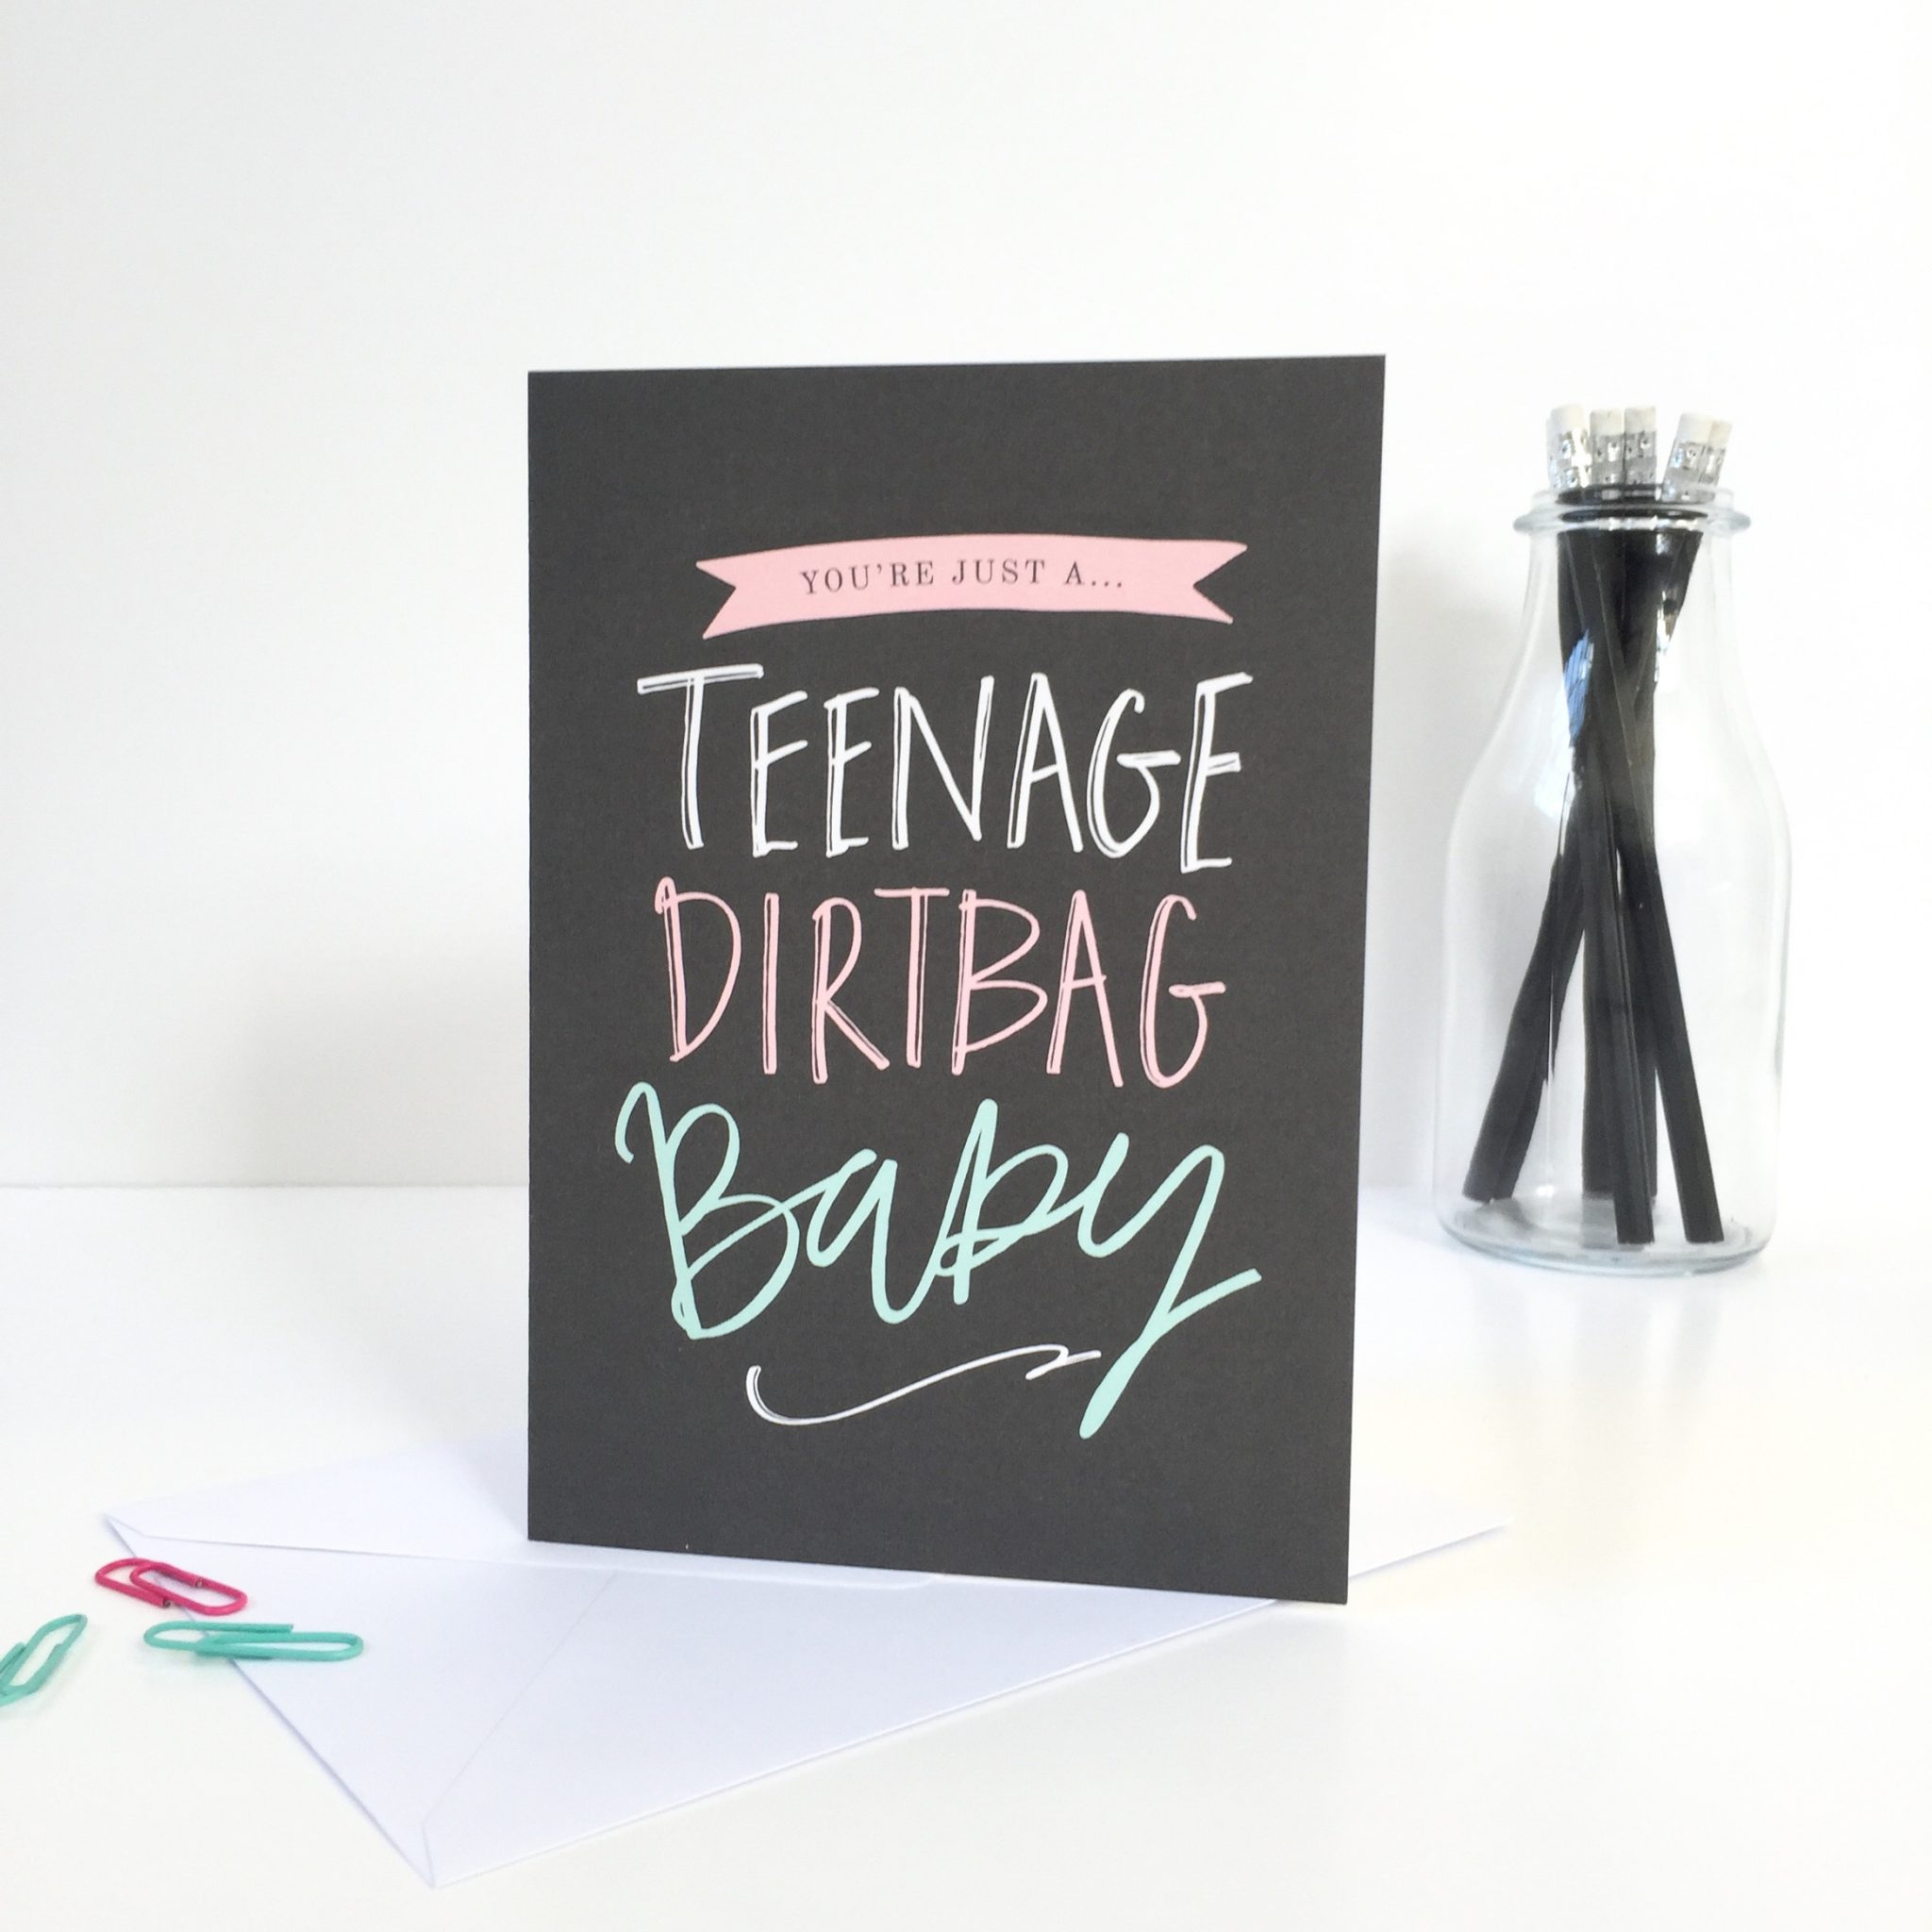 Happy Birthday Teenage Dirtbag Card in Pink